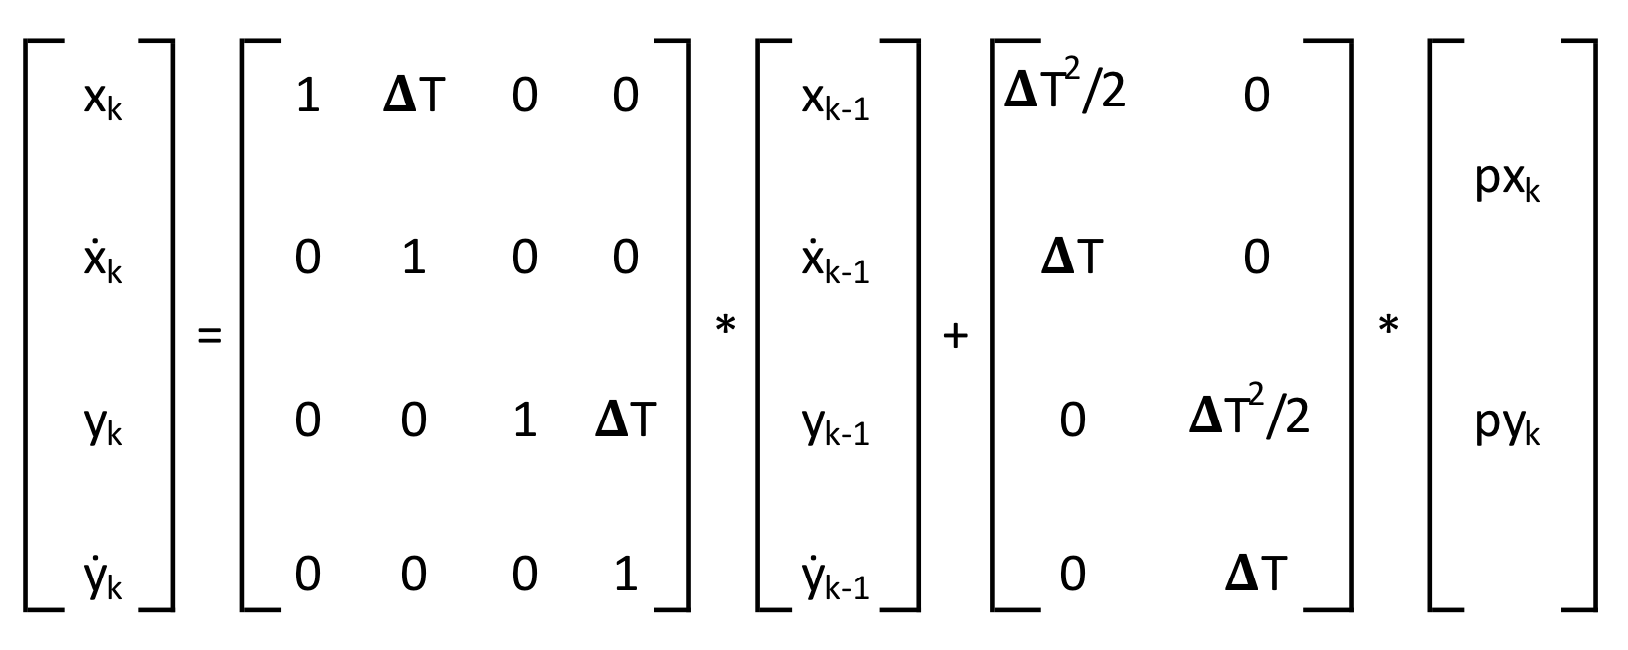 Linear dynamic equation of the system.